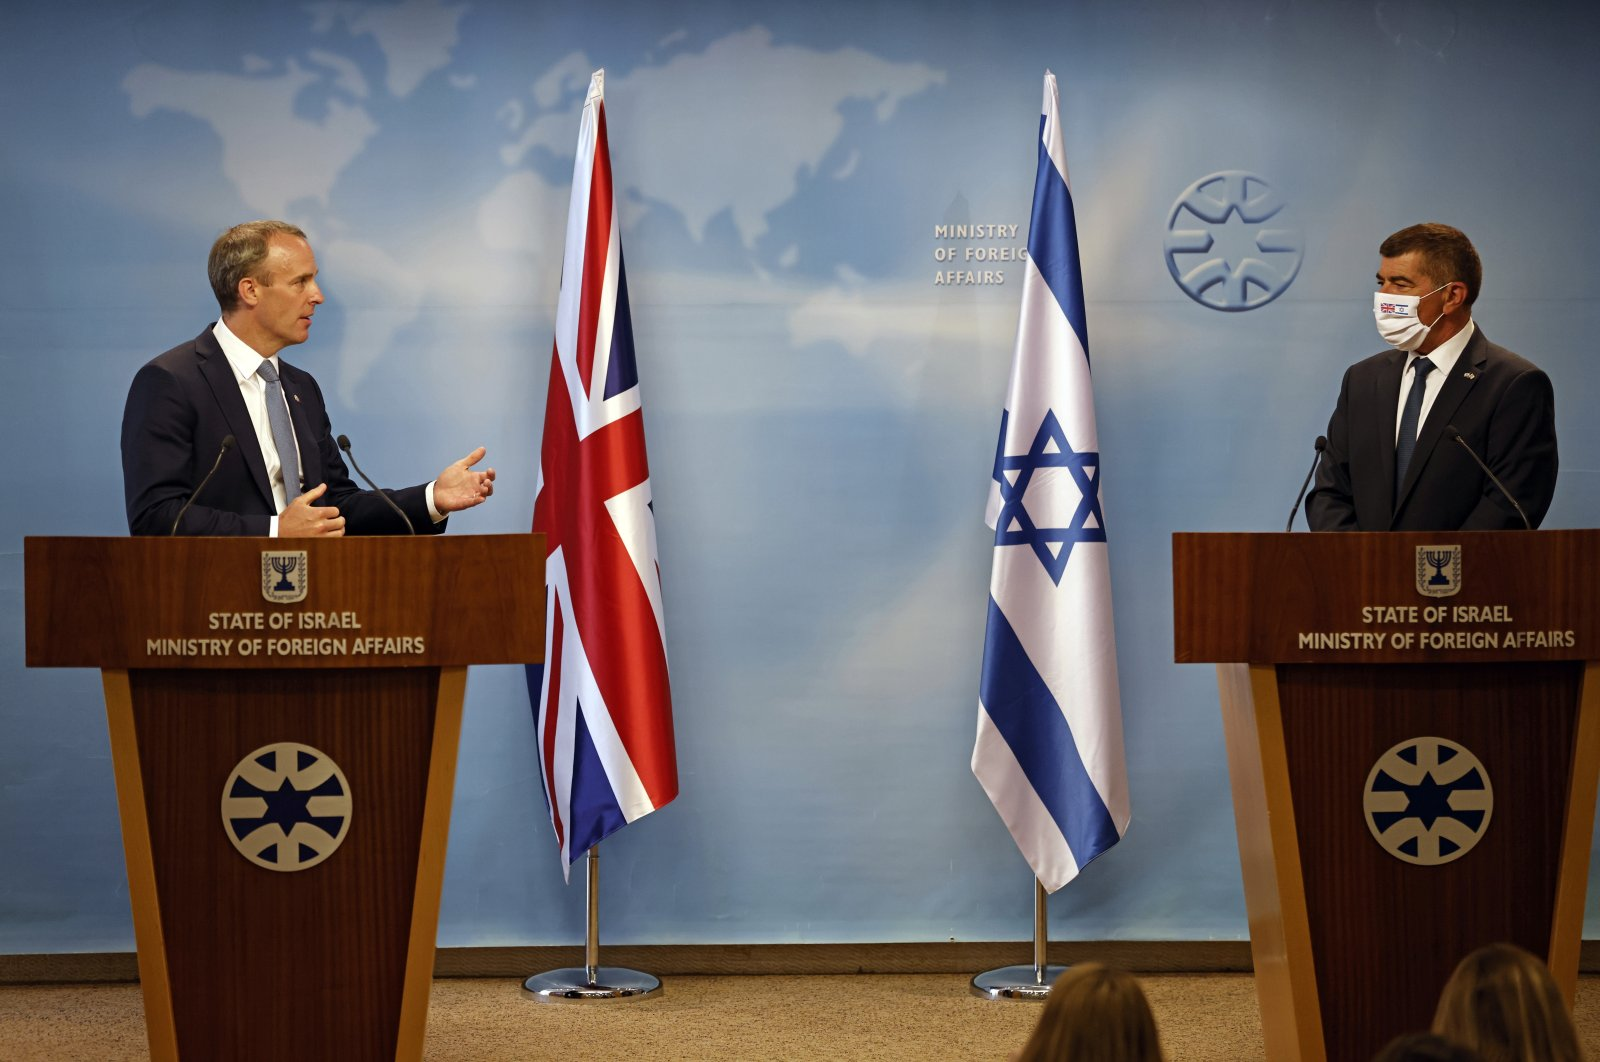 Israel's Foreign Minister Gabi Ashkenazi (R) and British Foreign Secretary Dominic Raab (L) hold a joint news conference after their meeting in Jerusalem, Israel, Aug. 25, 2020. (EPA Photo)